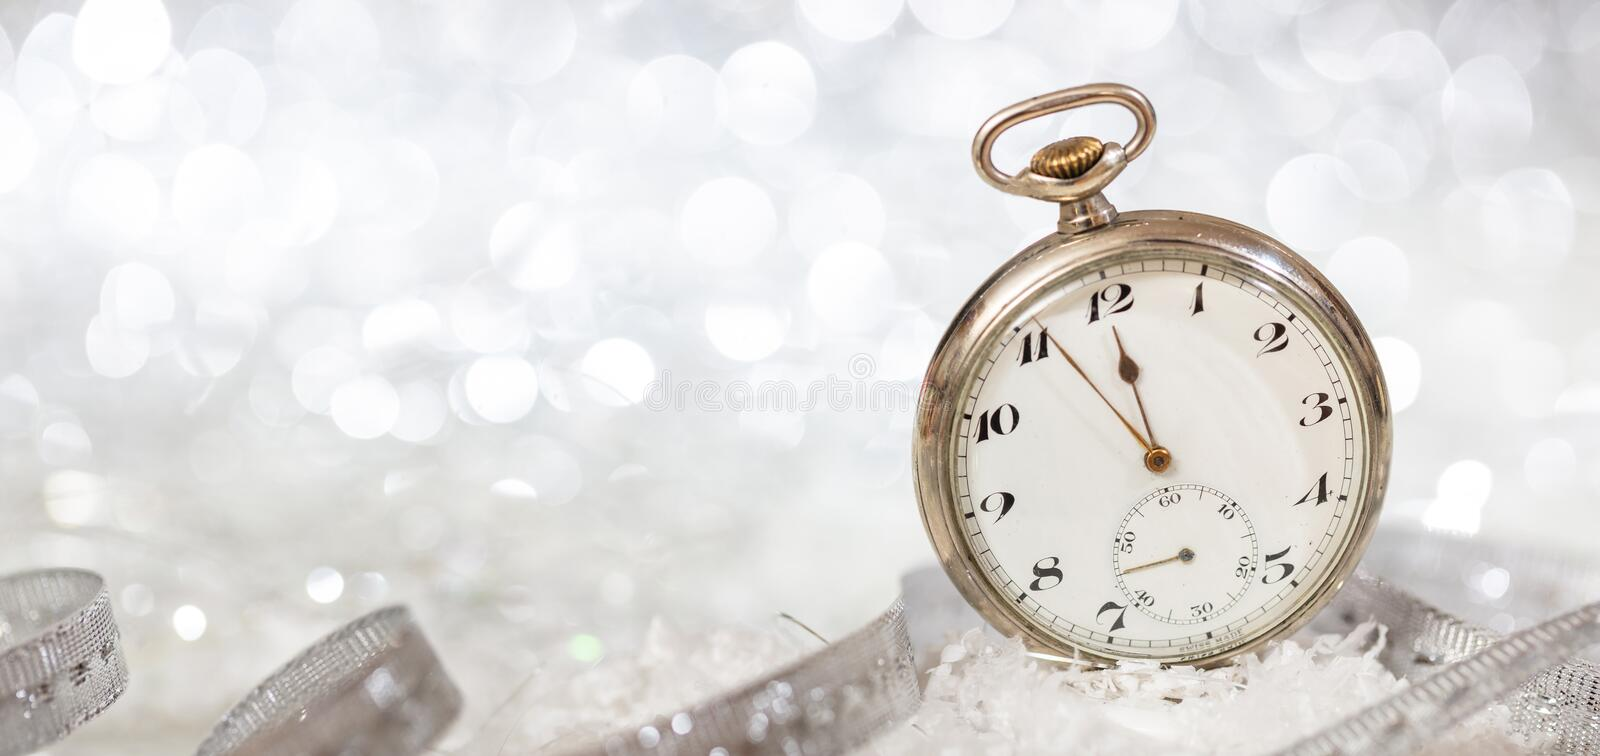 New Years eve party celebration. Minutes to midnight on an old fashioned watch, bokeh festive background royalty free stock photo